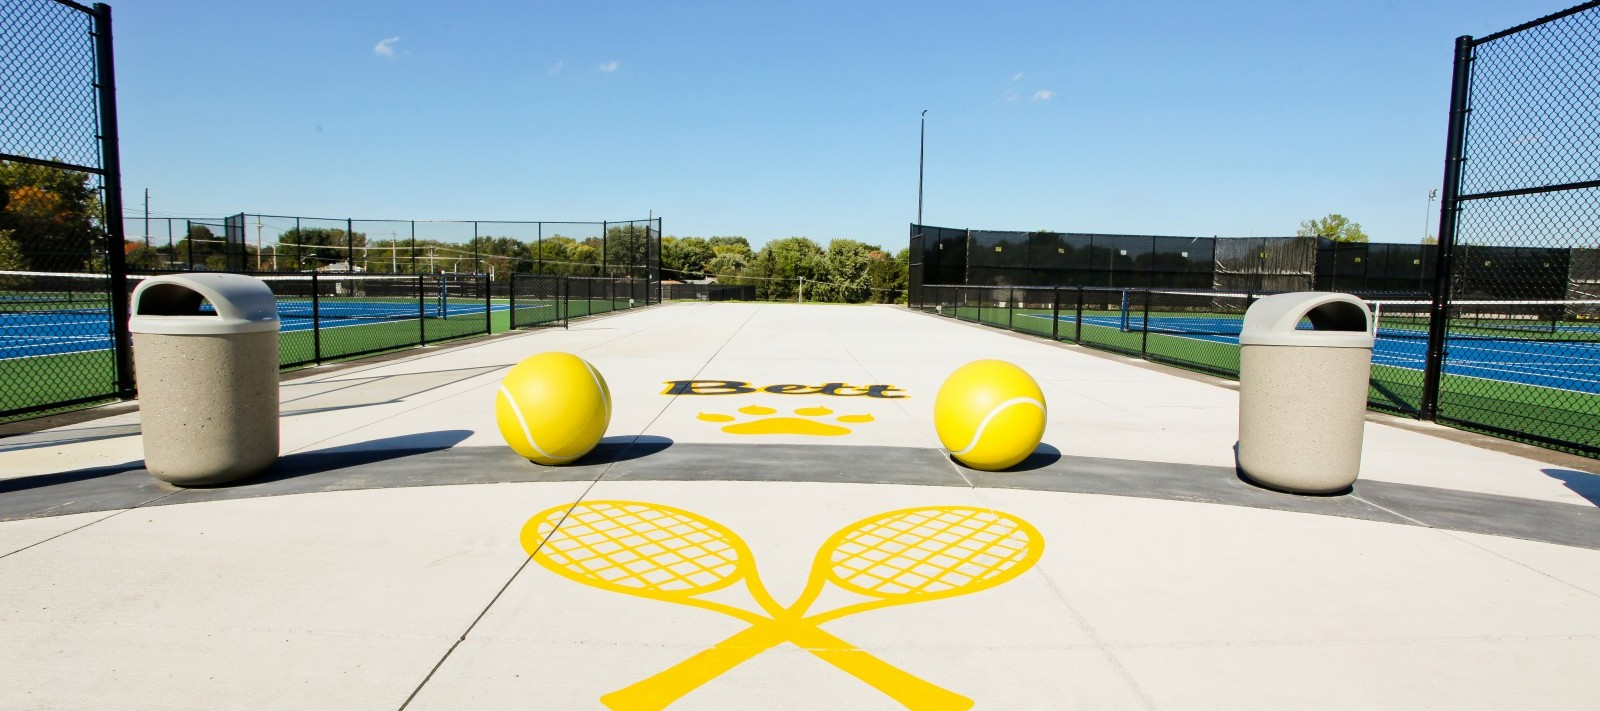 Bettendorf tennis courts entrance with giant concrete tennis balls